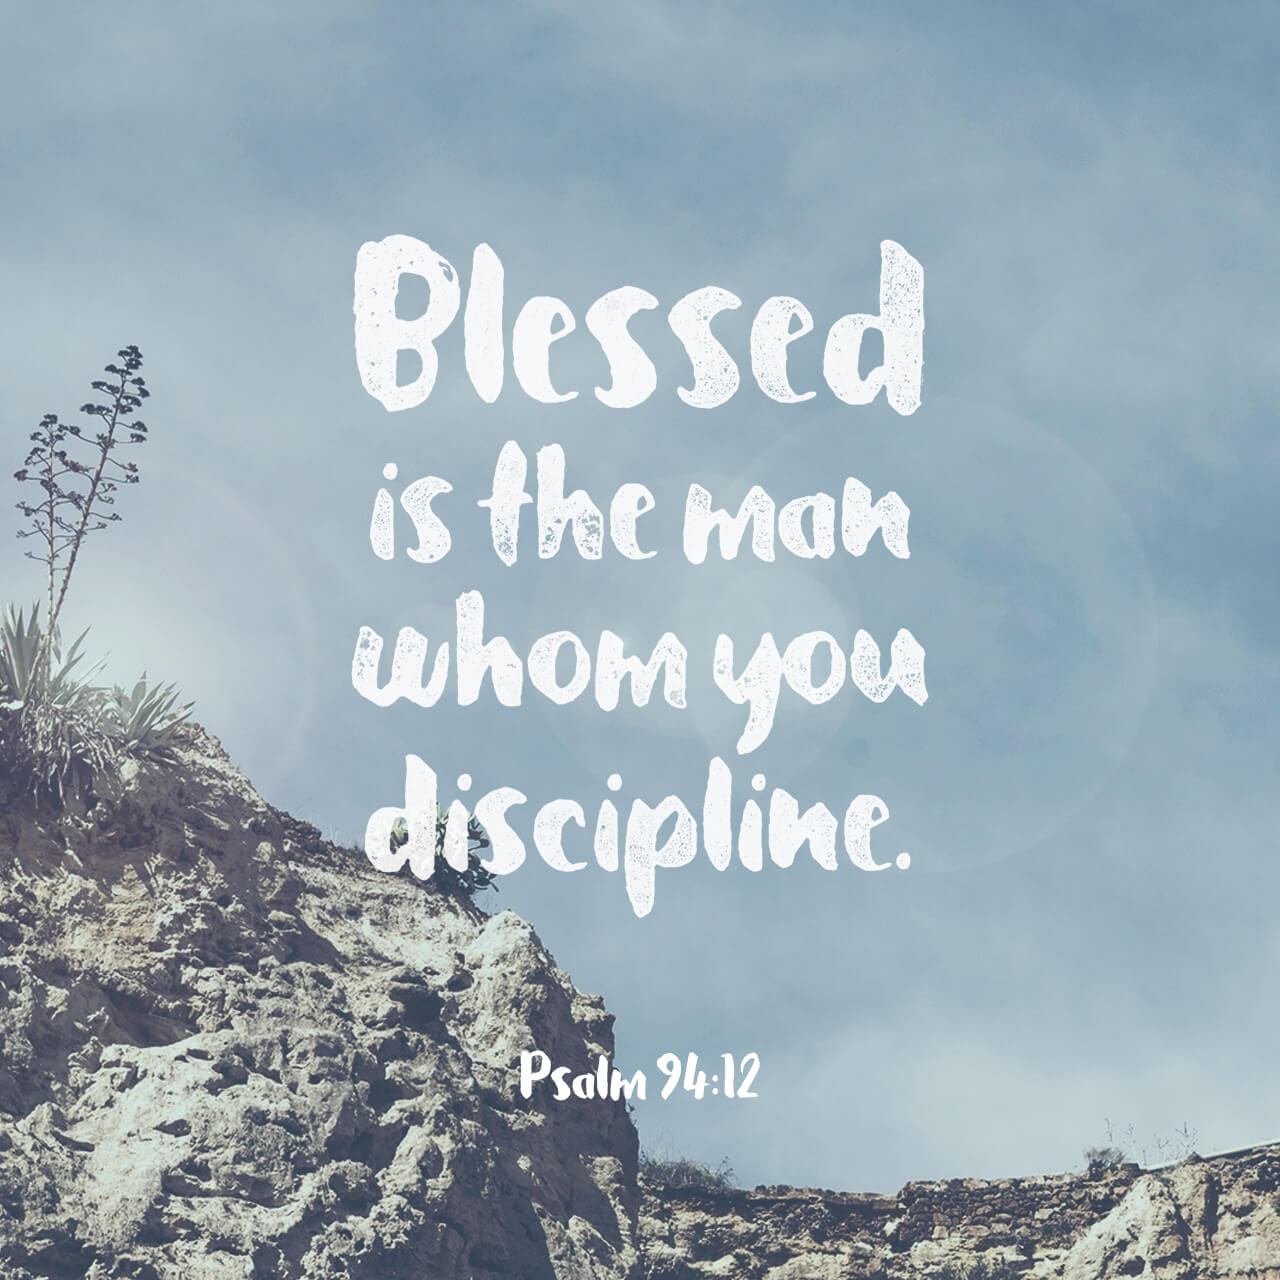 Psalm 94:12-13 Blessed is the one you discipline, LORD, the one you teach from your law; you grant them relief from days of trouble, till a pit is dug for the wicked. | New International Version (NIV)